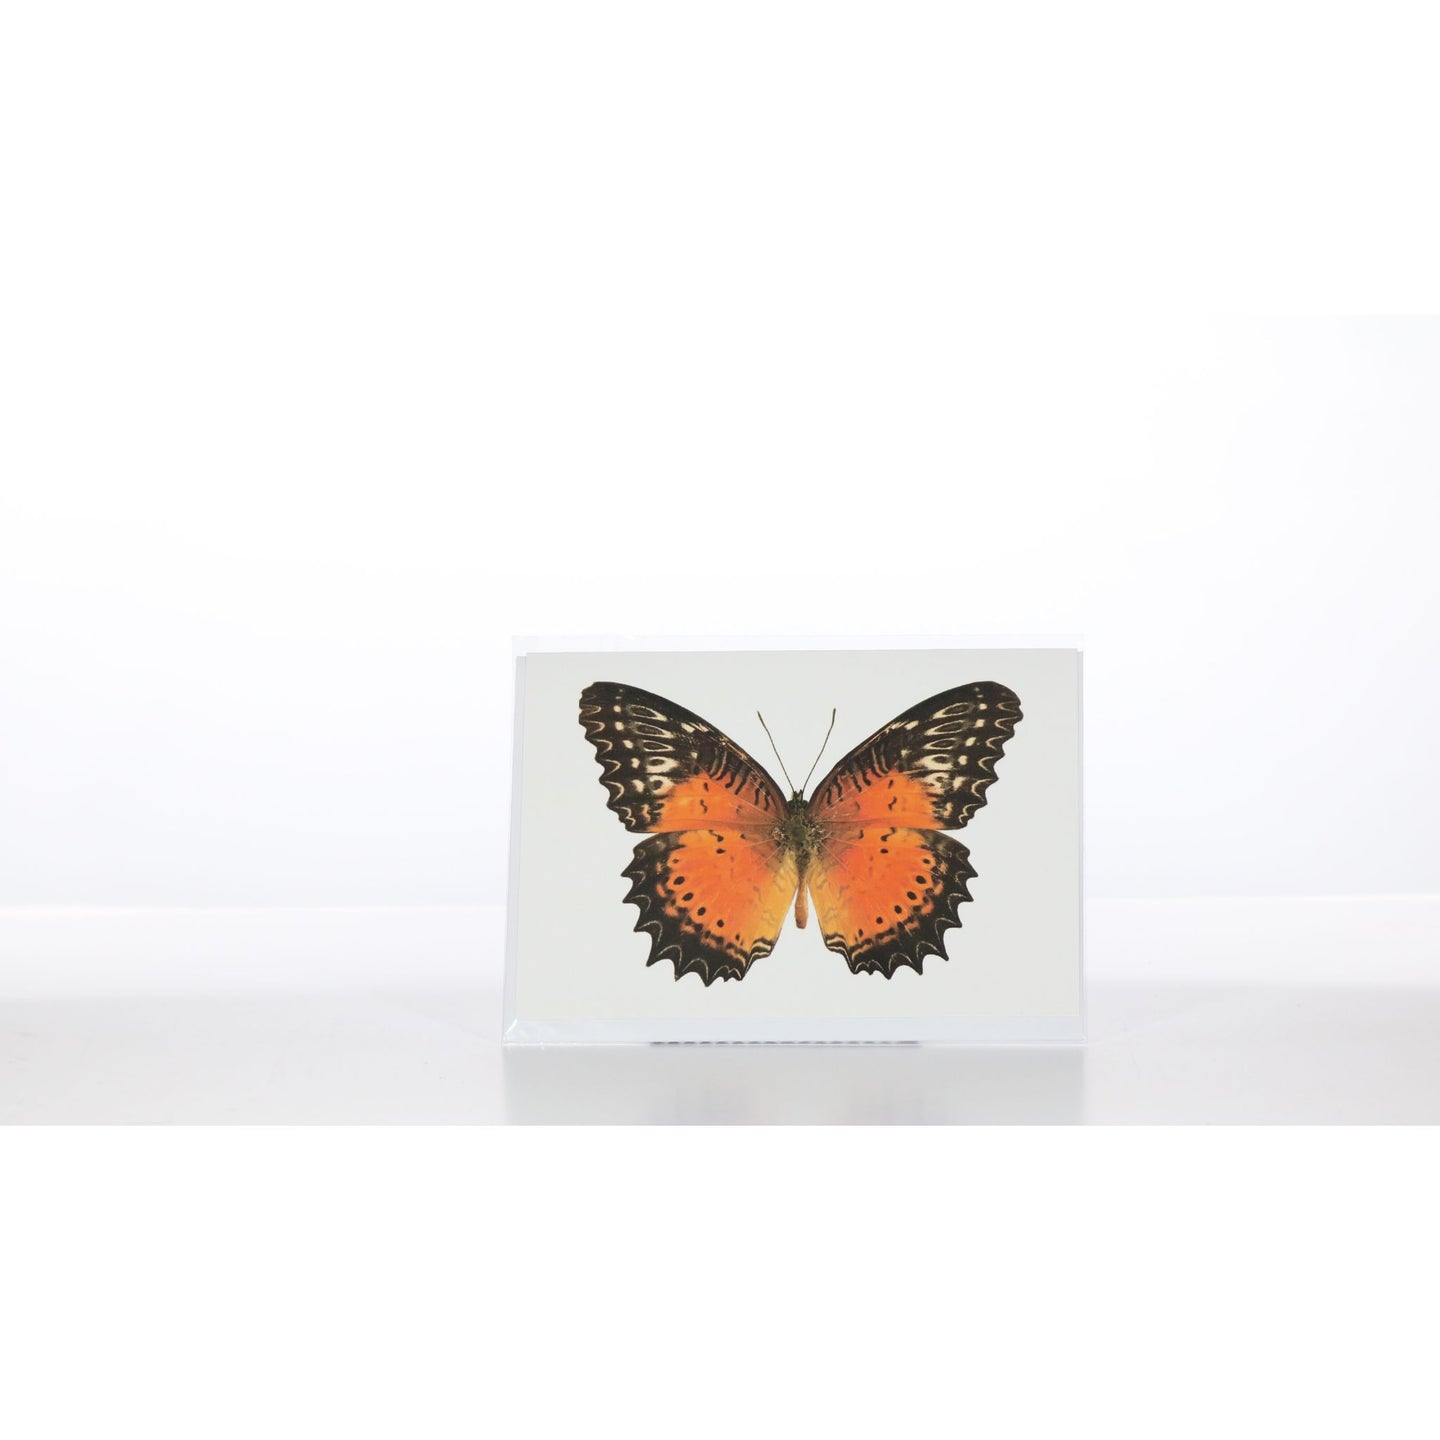 Greeting Card GC18 - Insecta Etcetera